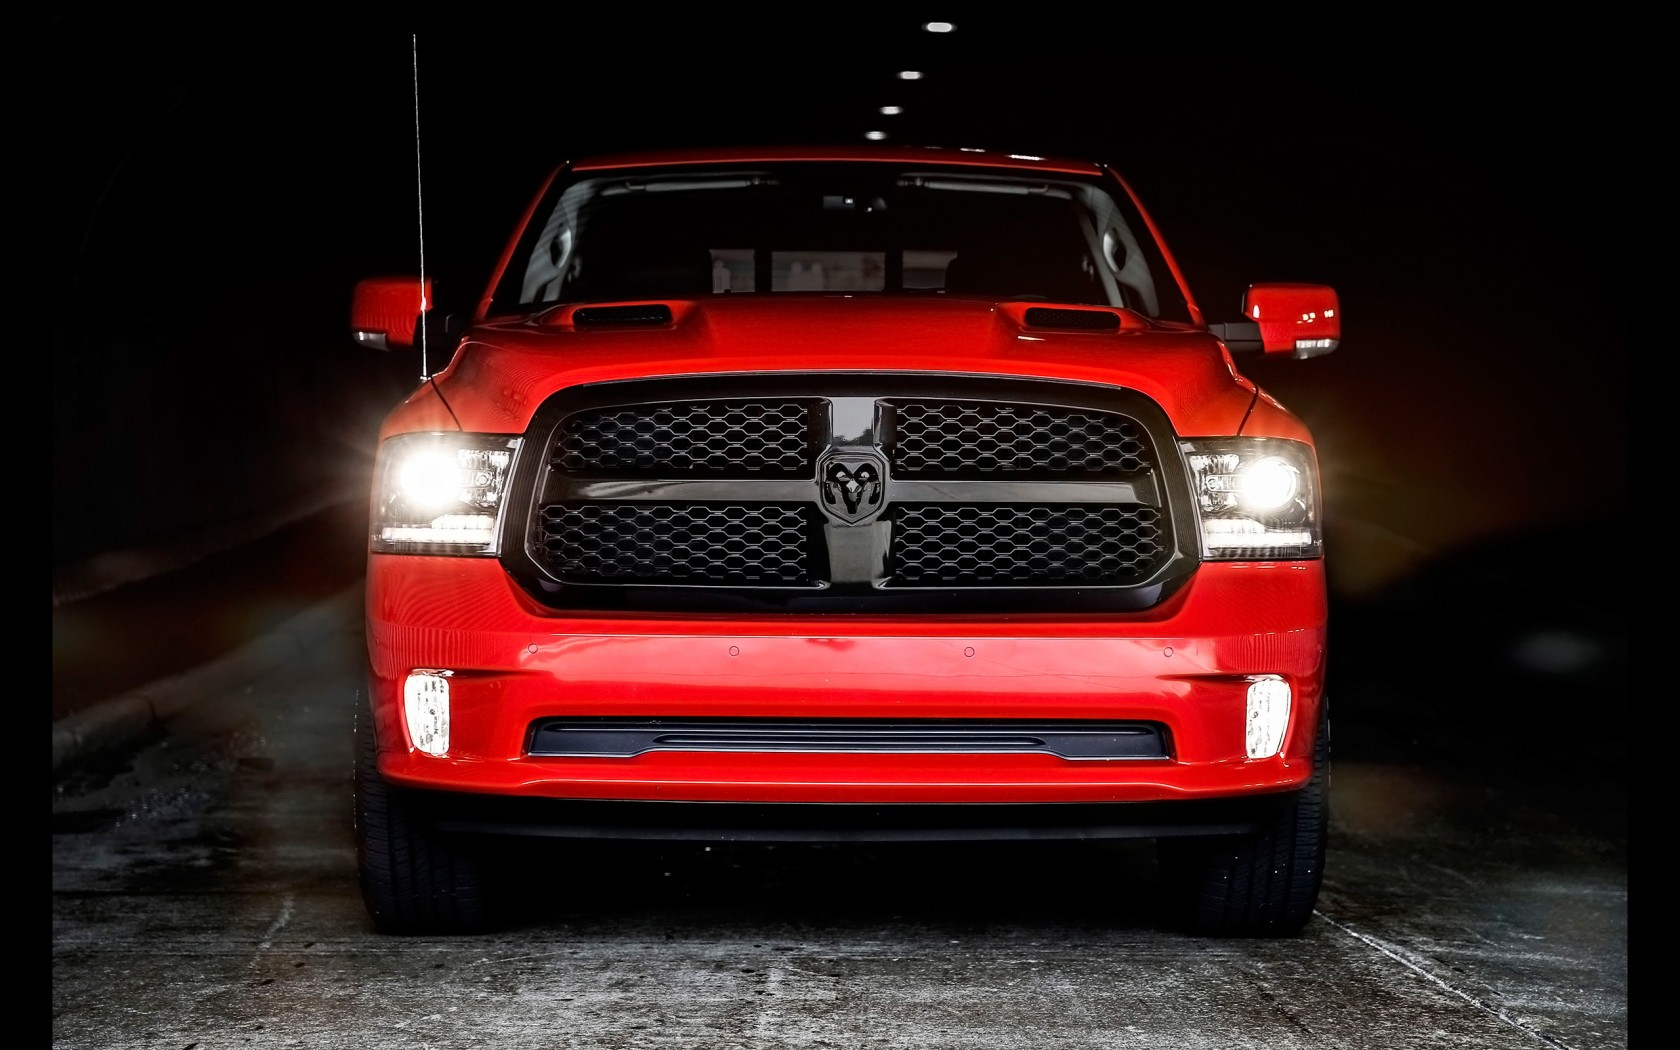 2017 Dodge Ram 1500 >> 2017 Ram 1500 Night Wallpaper | HD Car Wallpapers | ID #6961